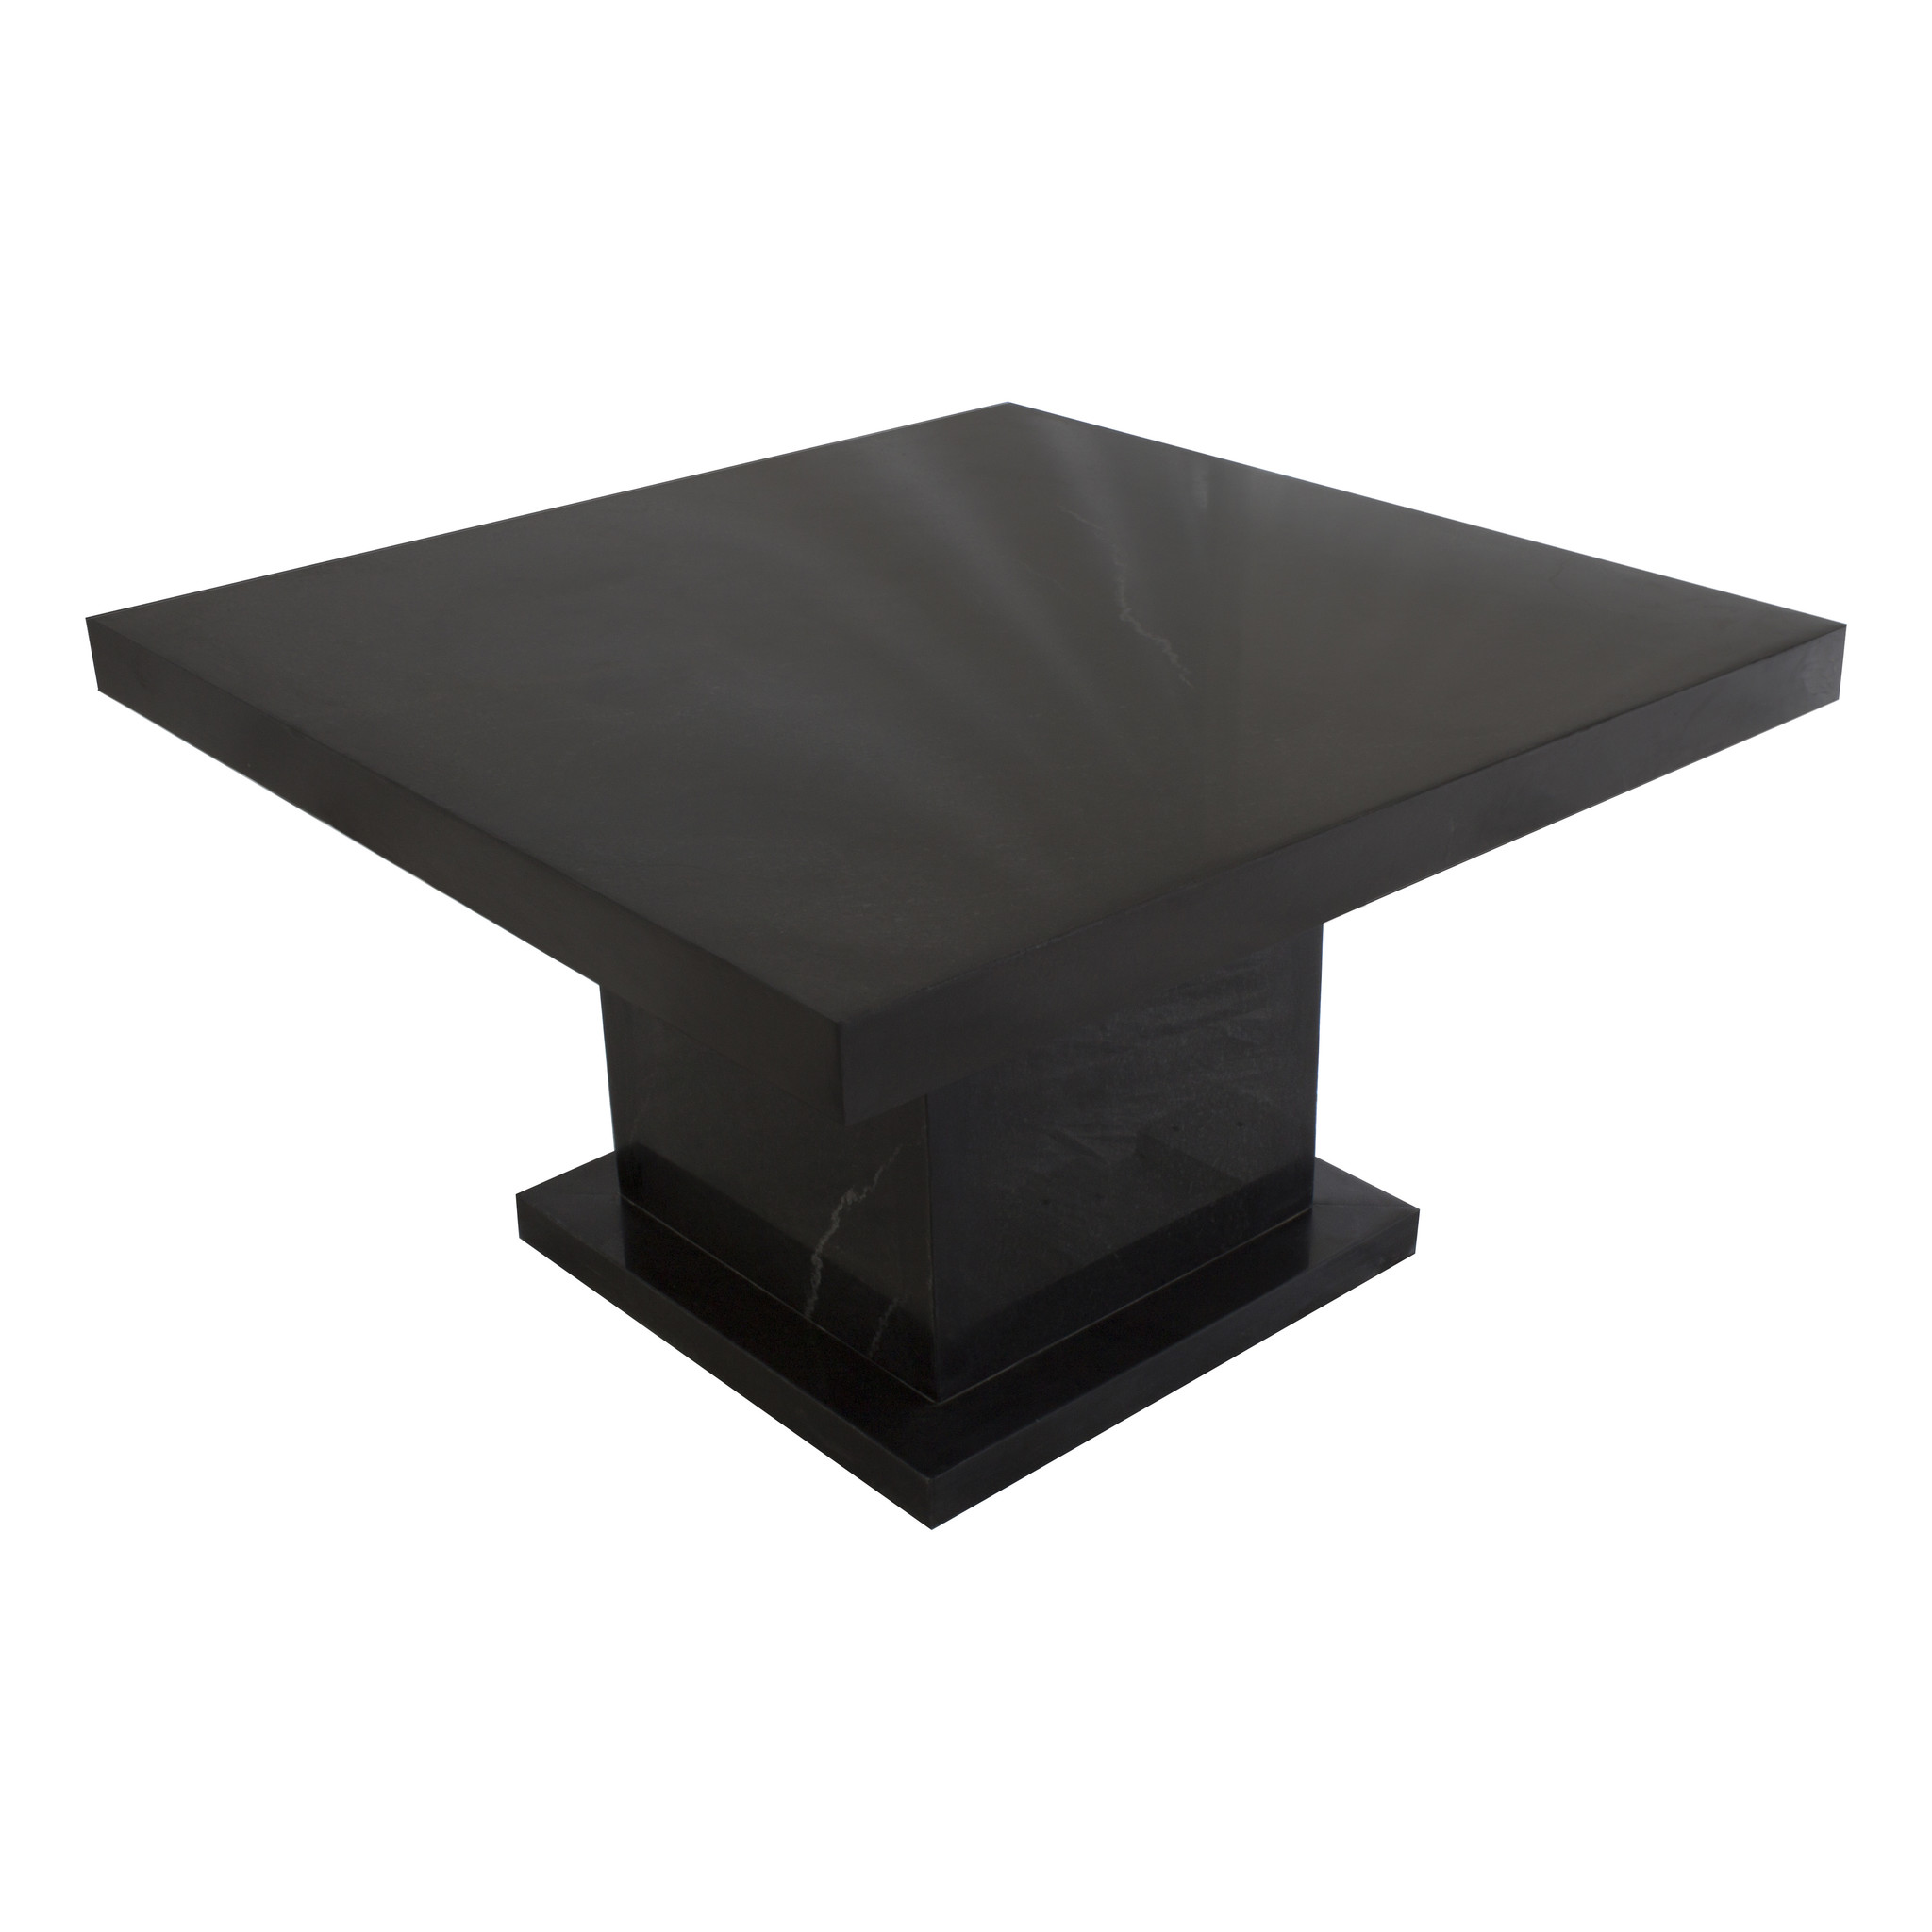 Indomarmer Coffee table Square 80x80x45 cm Black Marble